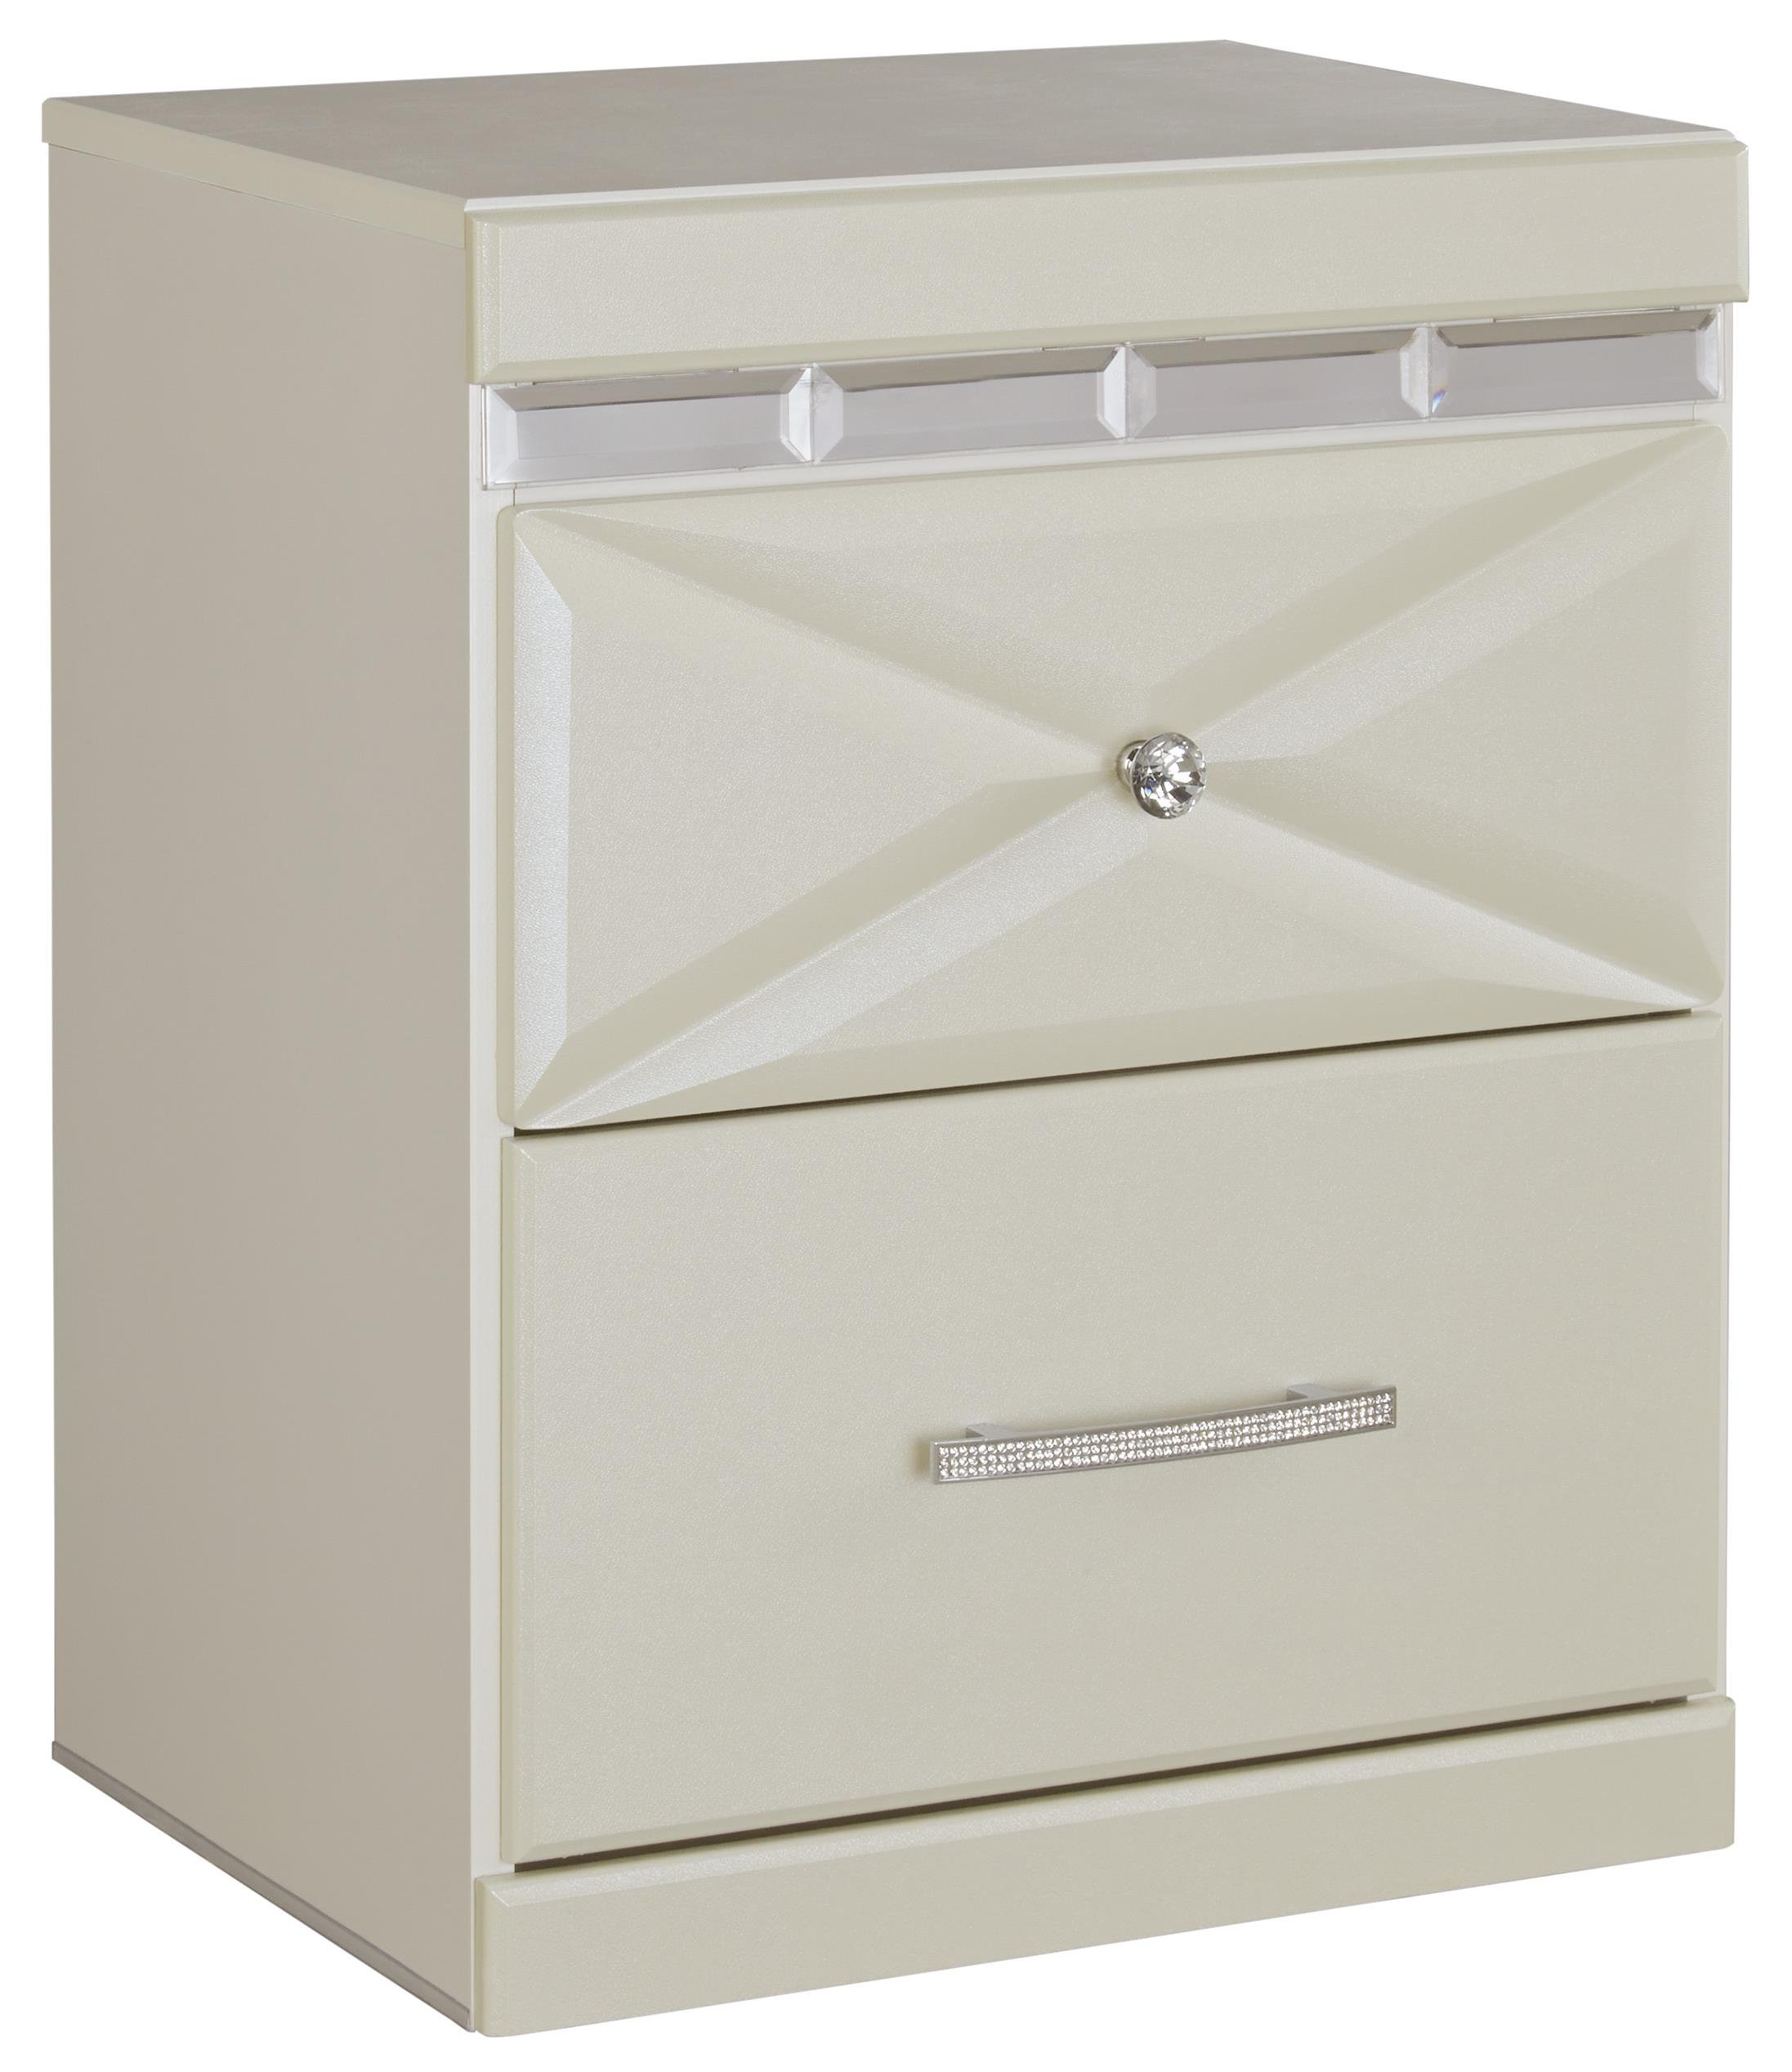 Signature Design by Ashley Dreamur Two Drawer Night Stand - Item Number: B351-92